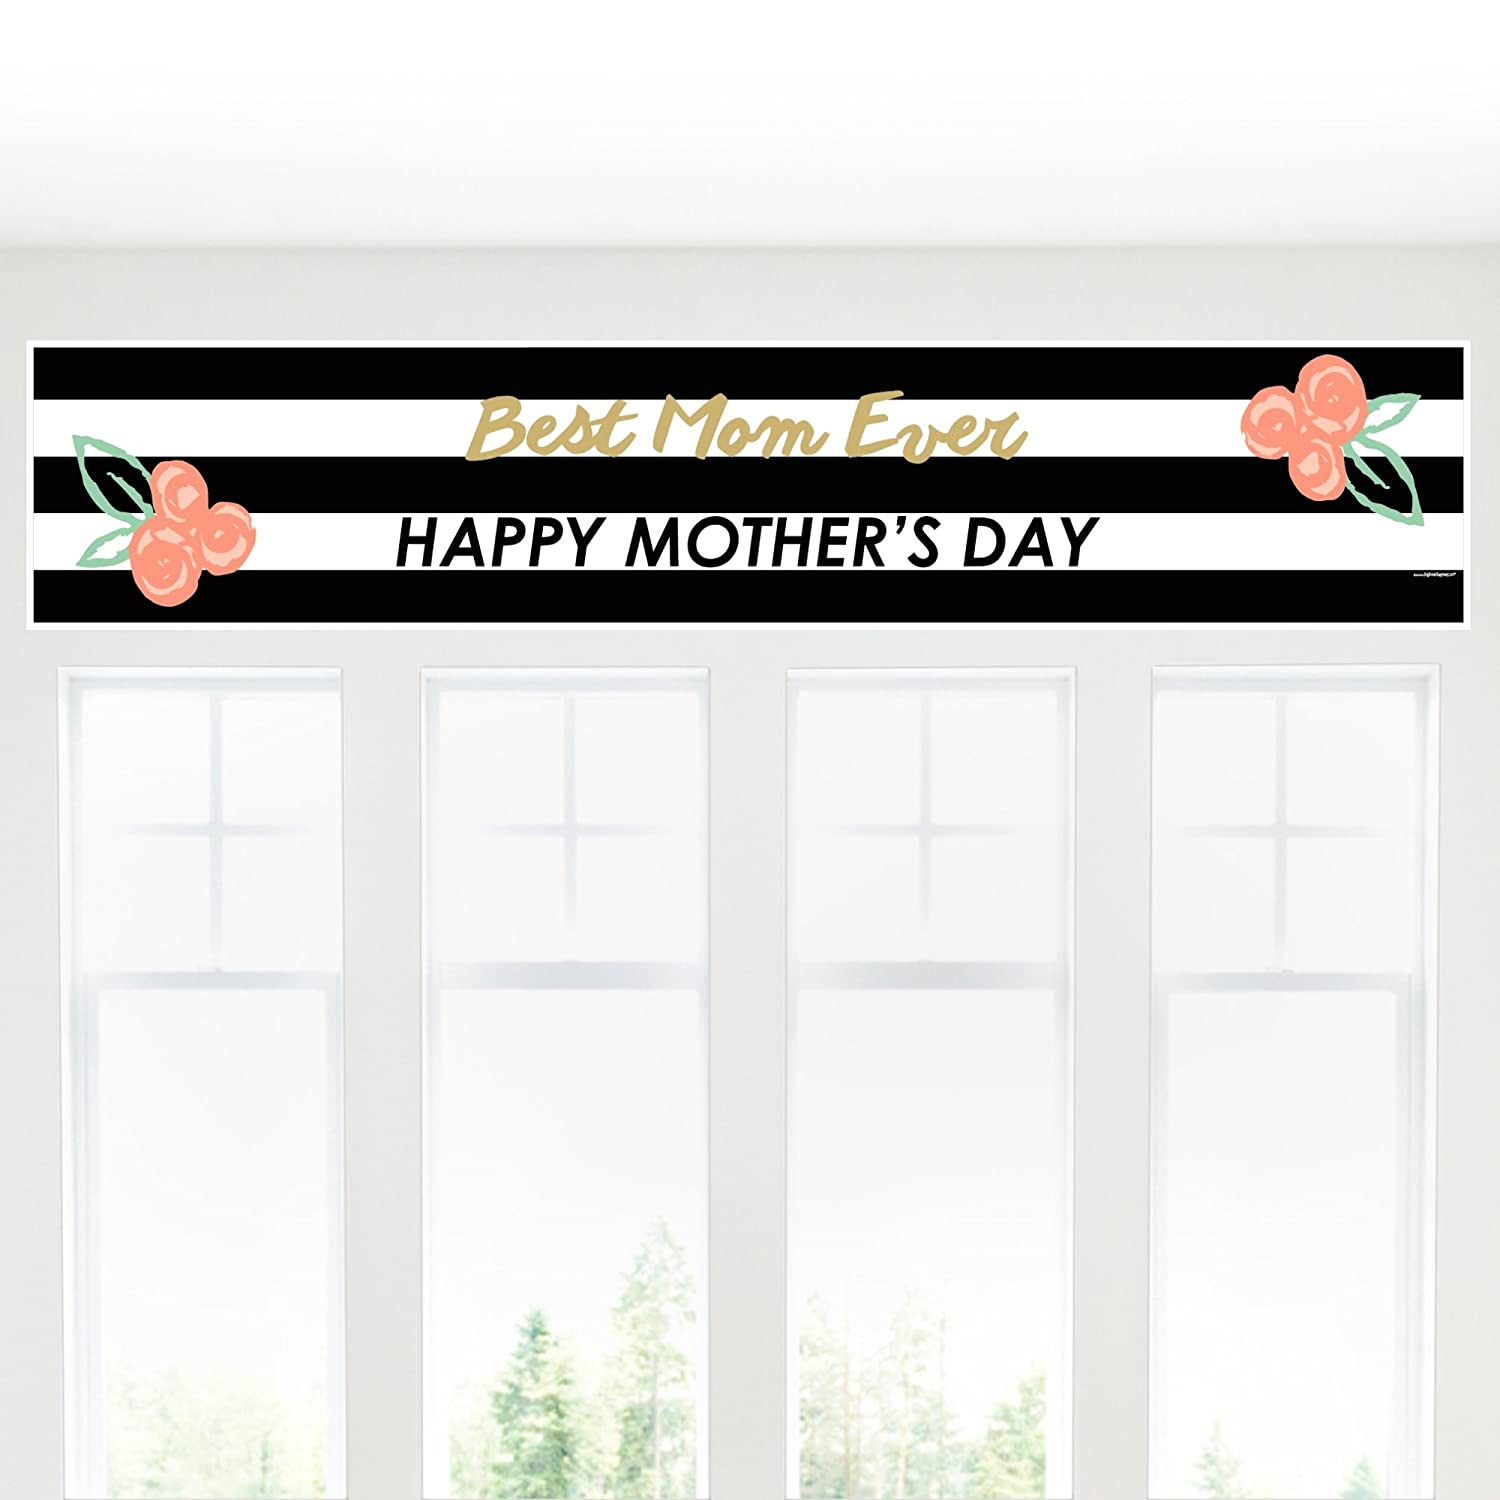 Petite Mothers Day Paper Table Runner Big Dot of Happiness Best Mom Ever 12 x 60